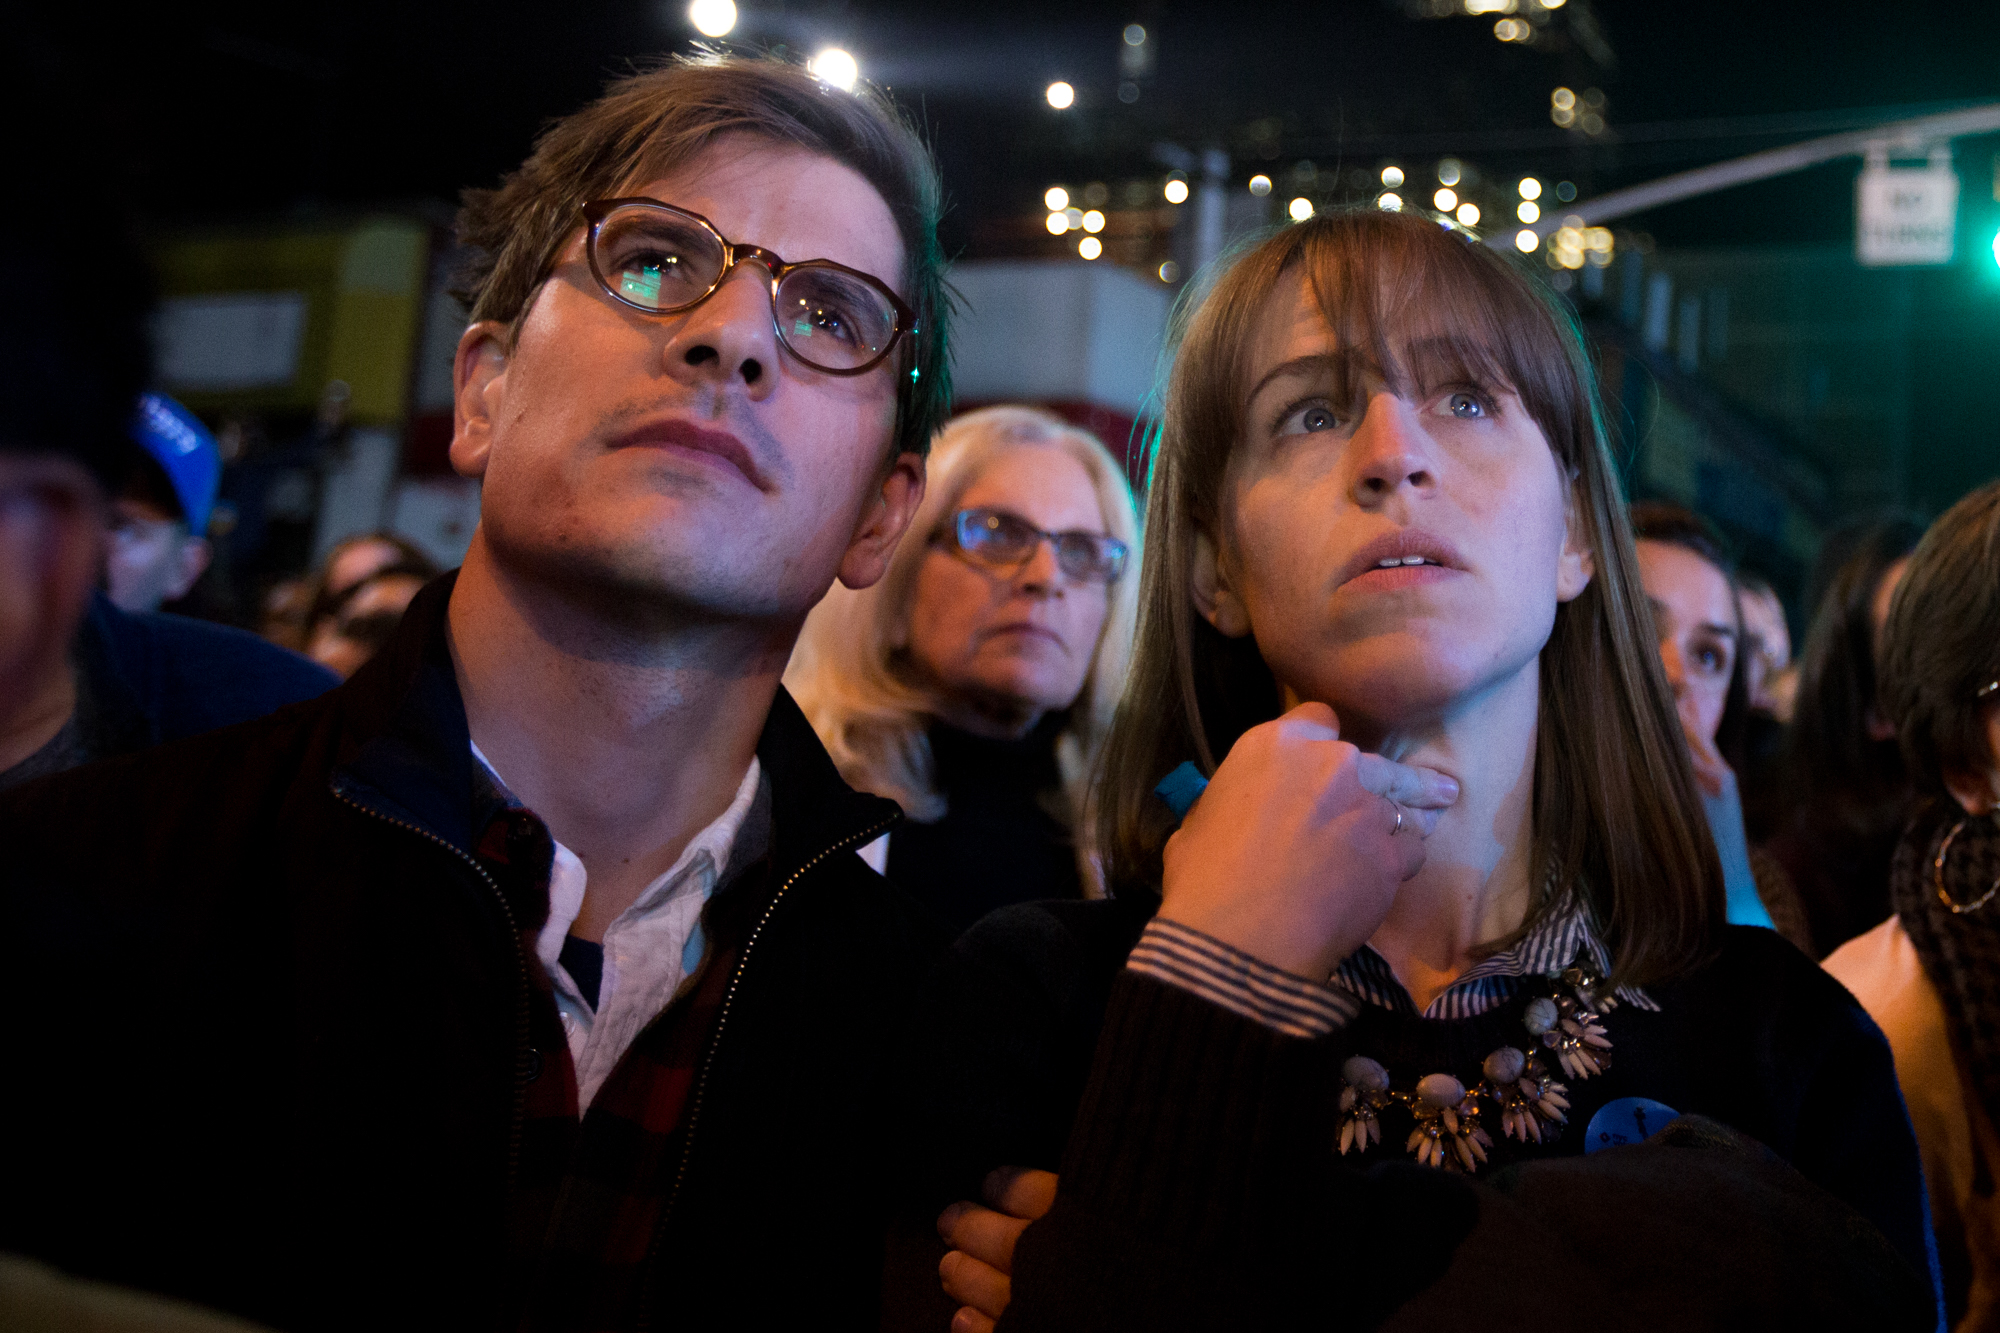 Attendees watch commentary and commercials on the big screen television during Hillary Clinton's Election Night Event outside of the Jacob K. Javits Convention Center, Nov. 8, 2016. News broadcasts were interspersed with commercials from Clinton's campaign and speakers on the stage outside.